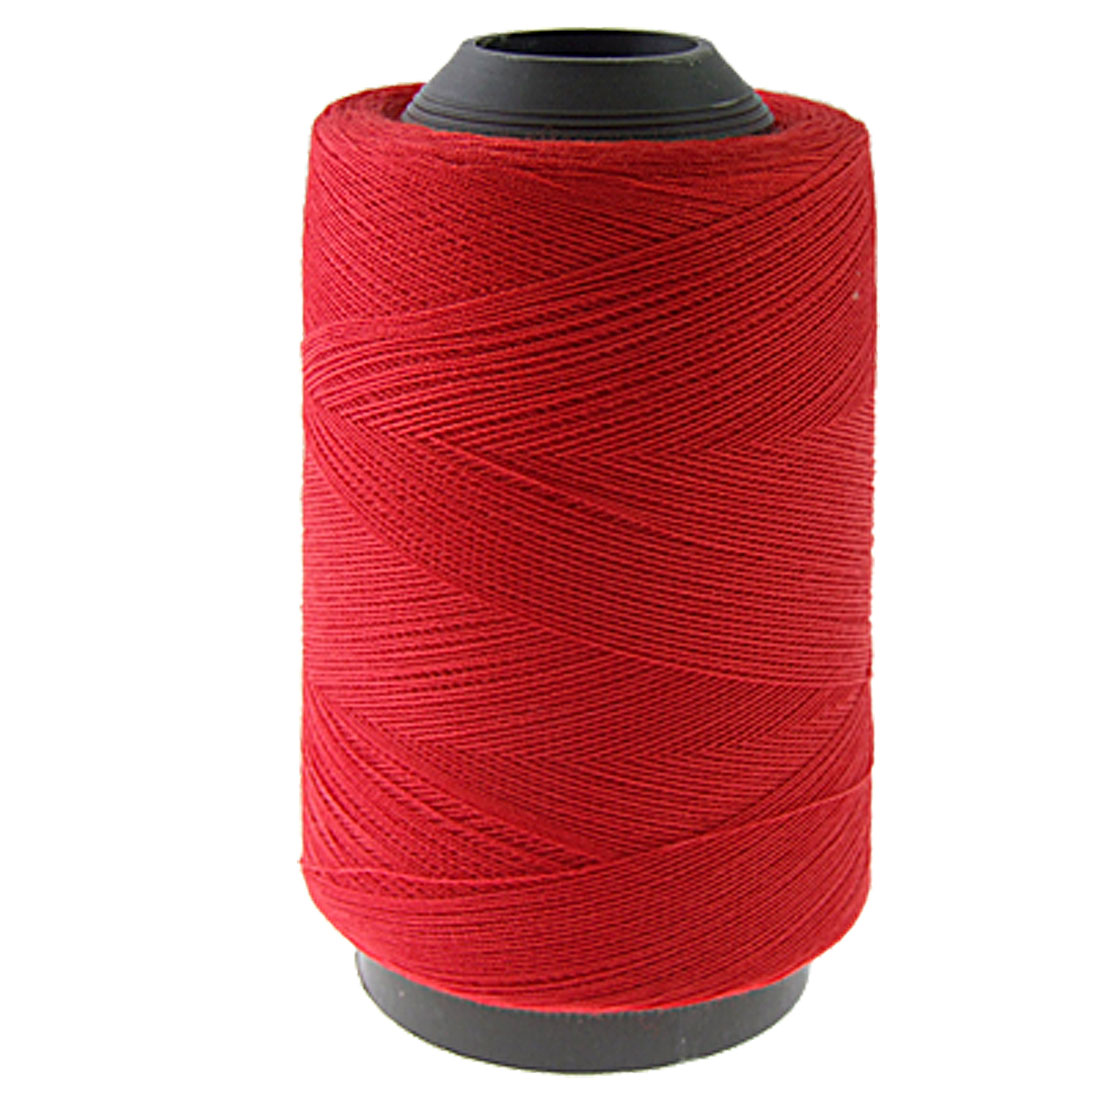 For Tailor Red Cotton Sewing Thread Reel Line Spool